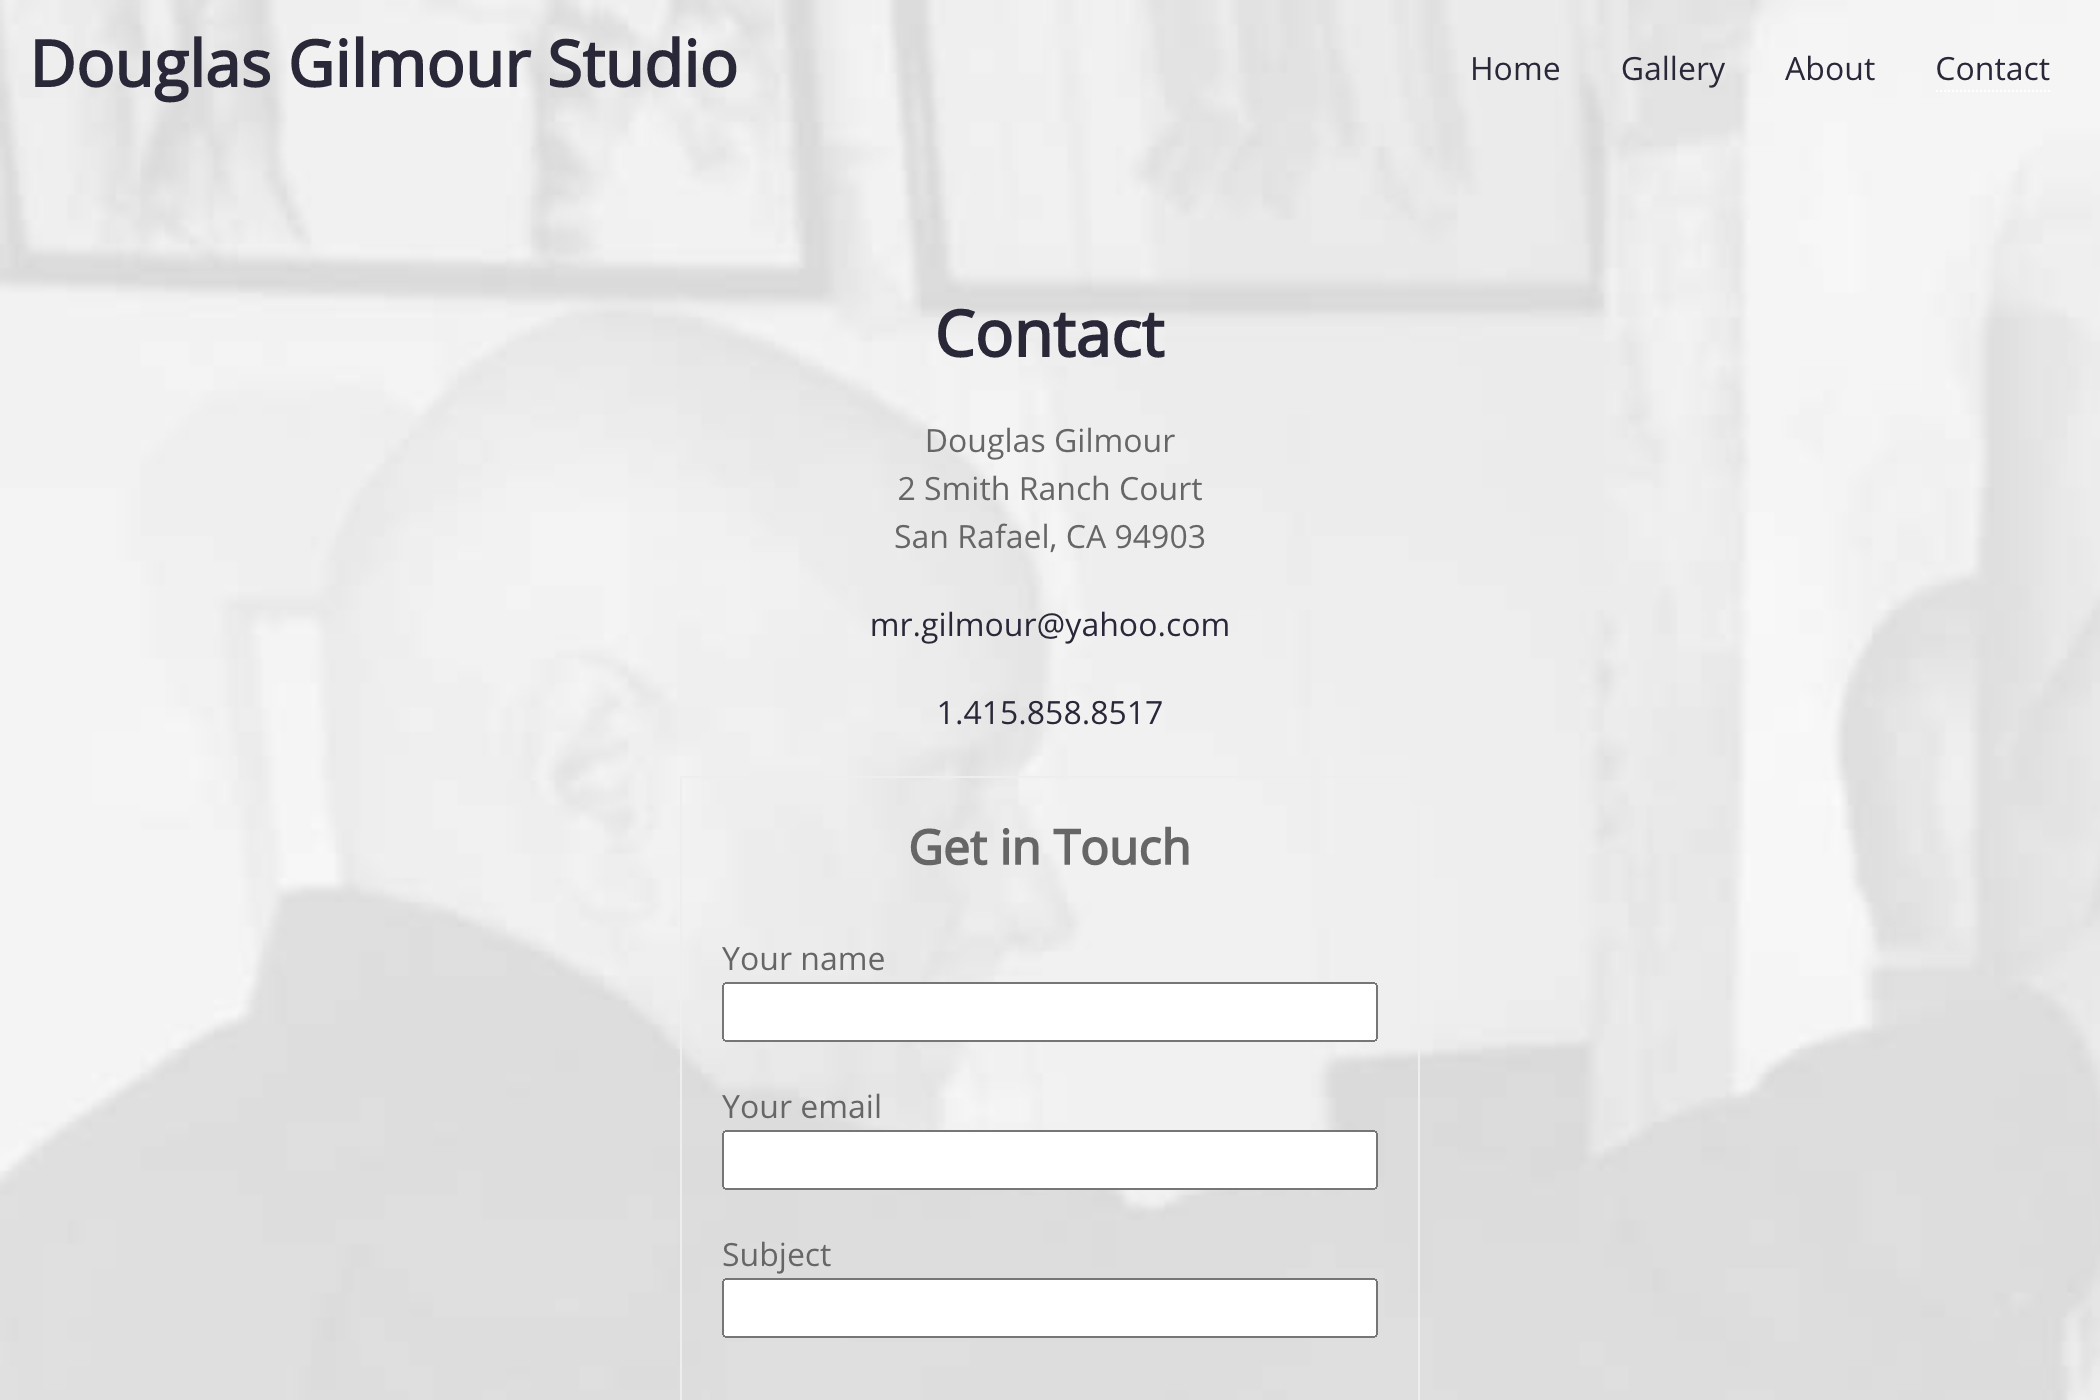 website design for an artist - contact page with cover background image